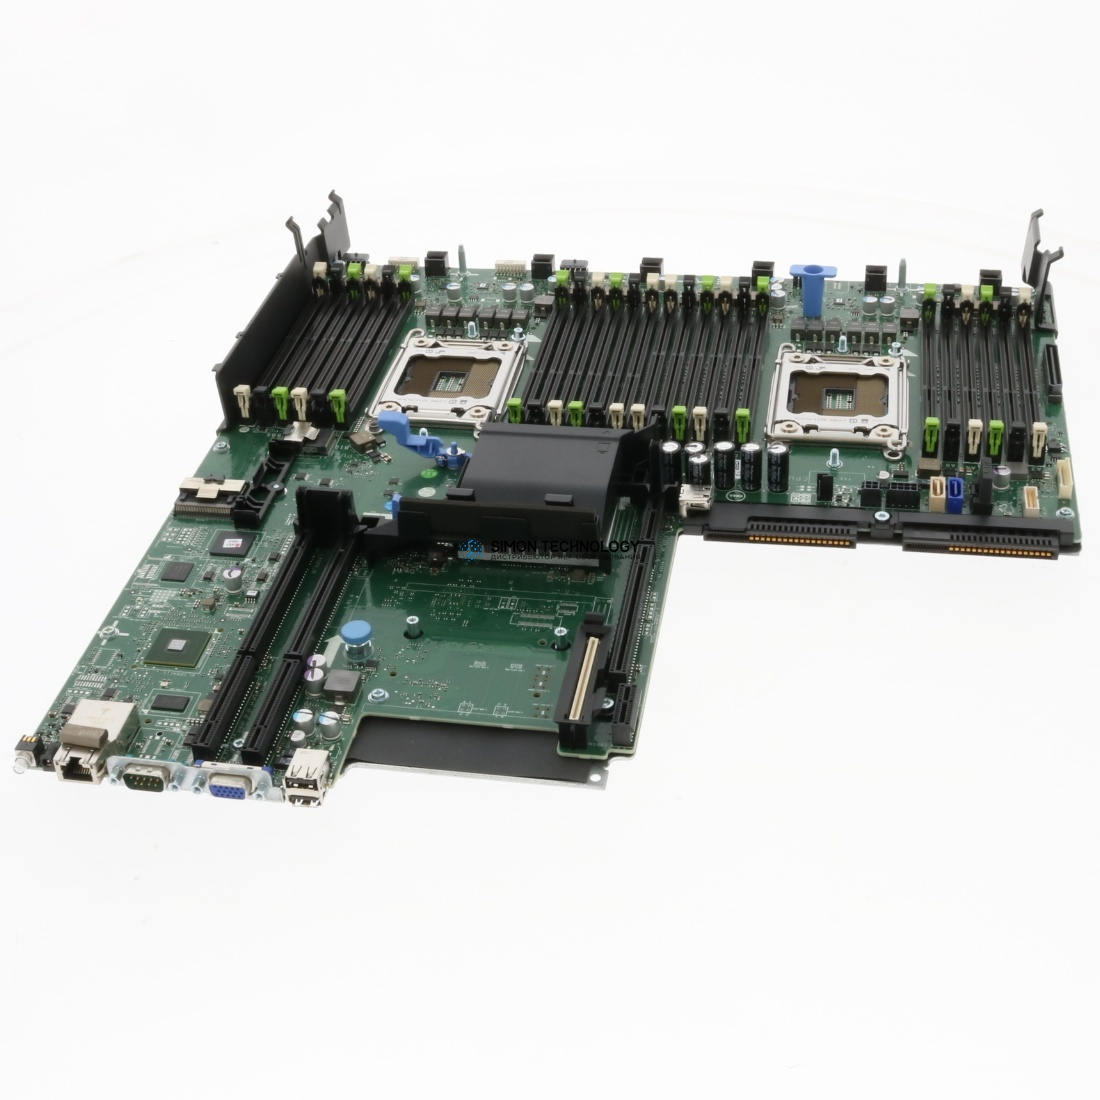 Материнская плата Dell PowerEdge R720 16x2.5 VRCY5 Ask for custom qoute (PER720-SFF-16-VRCY5)